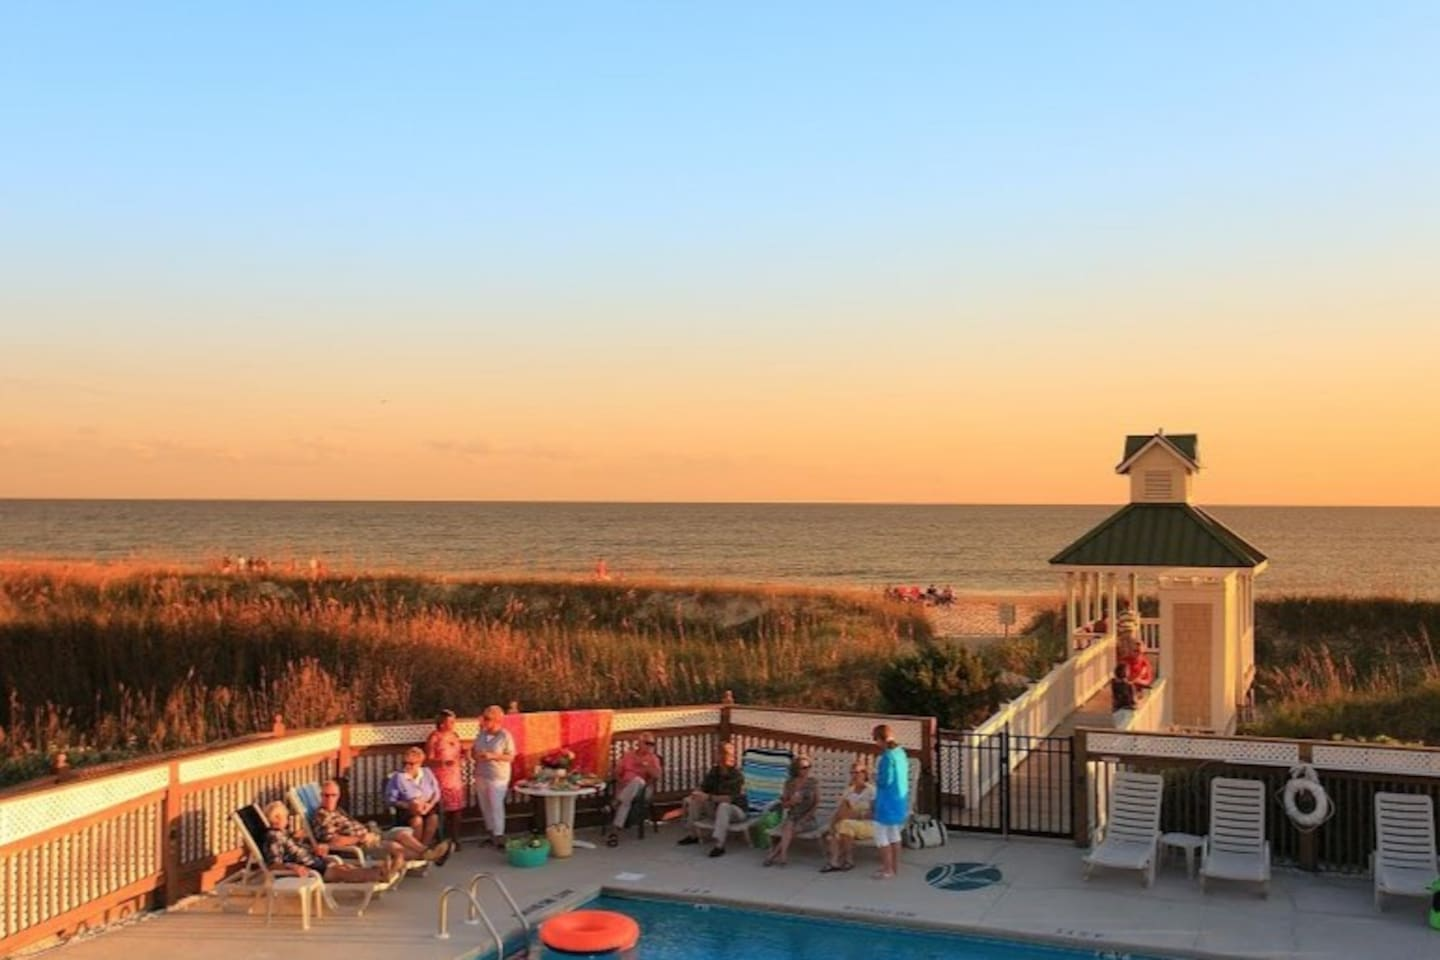 St. James Beach Club-located on Oak Island